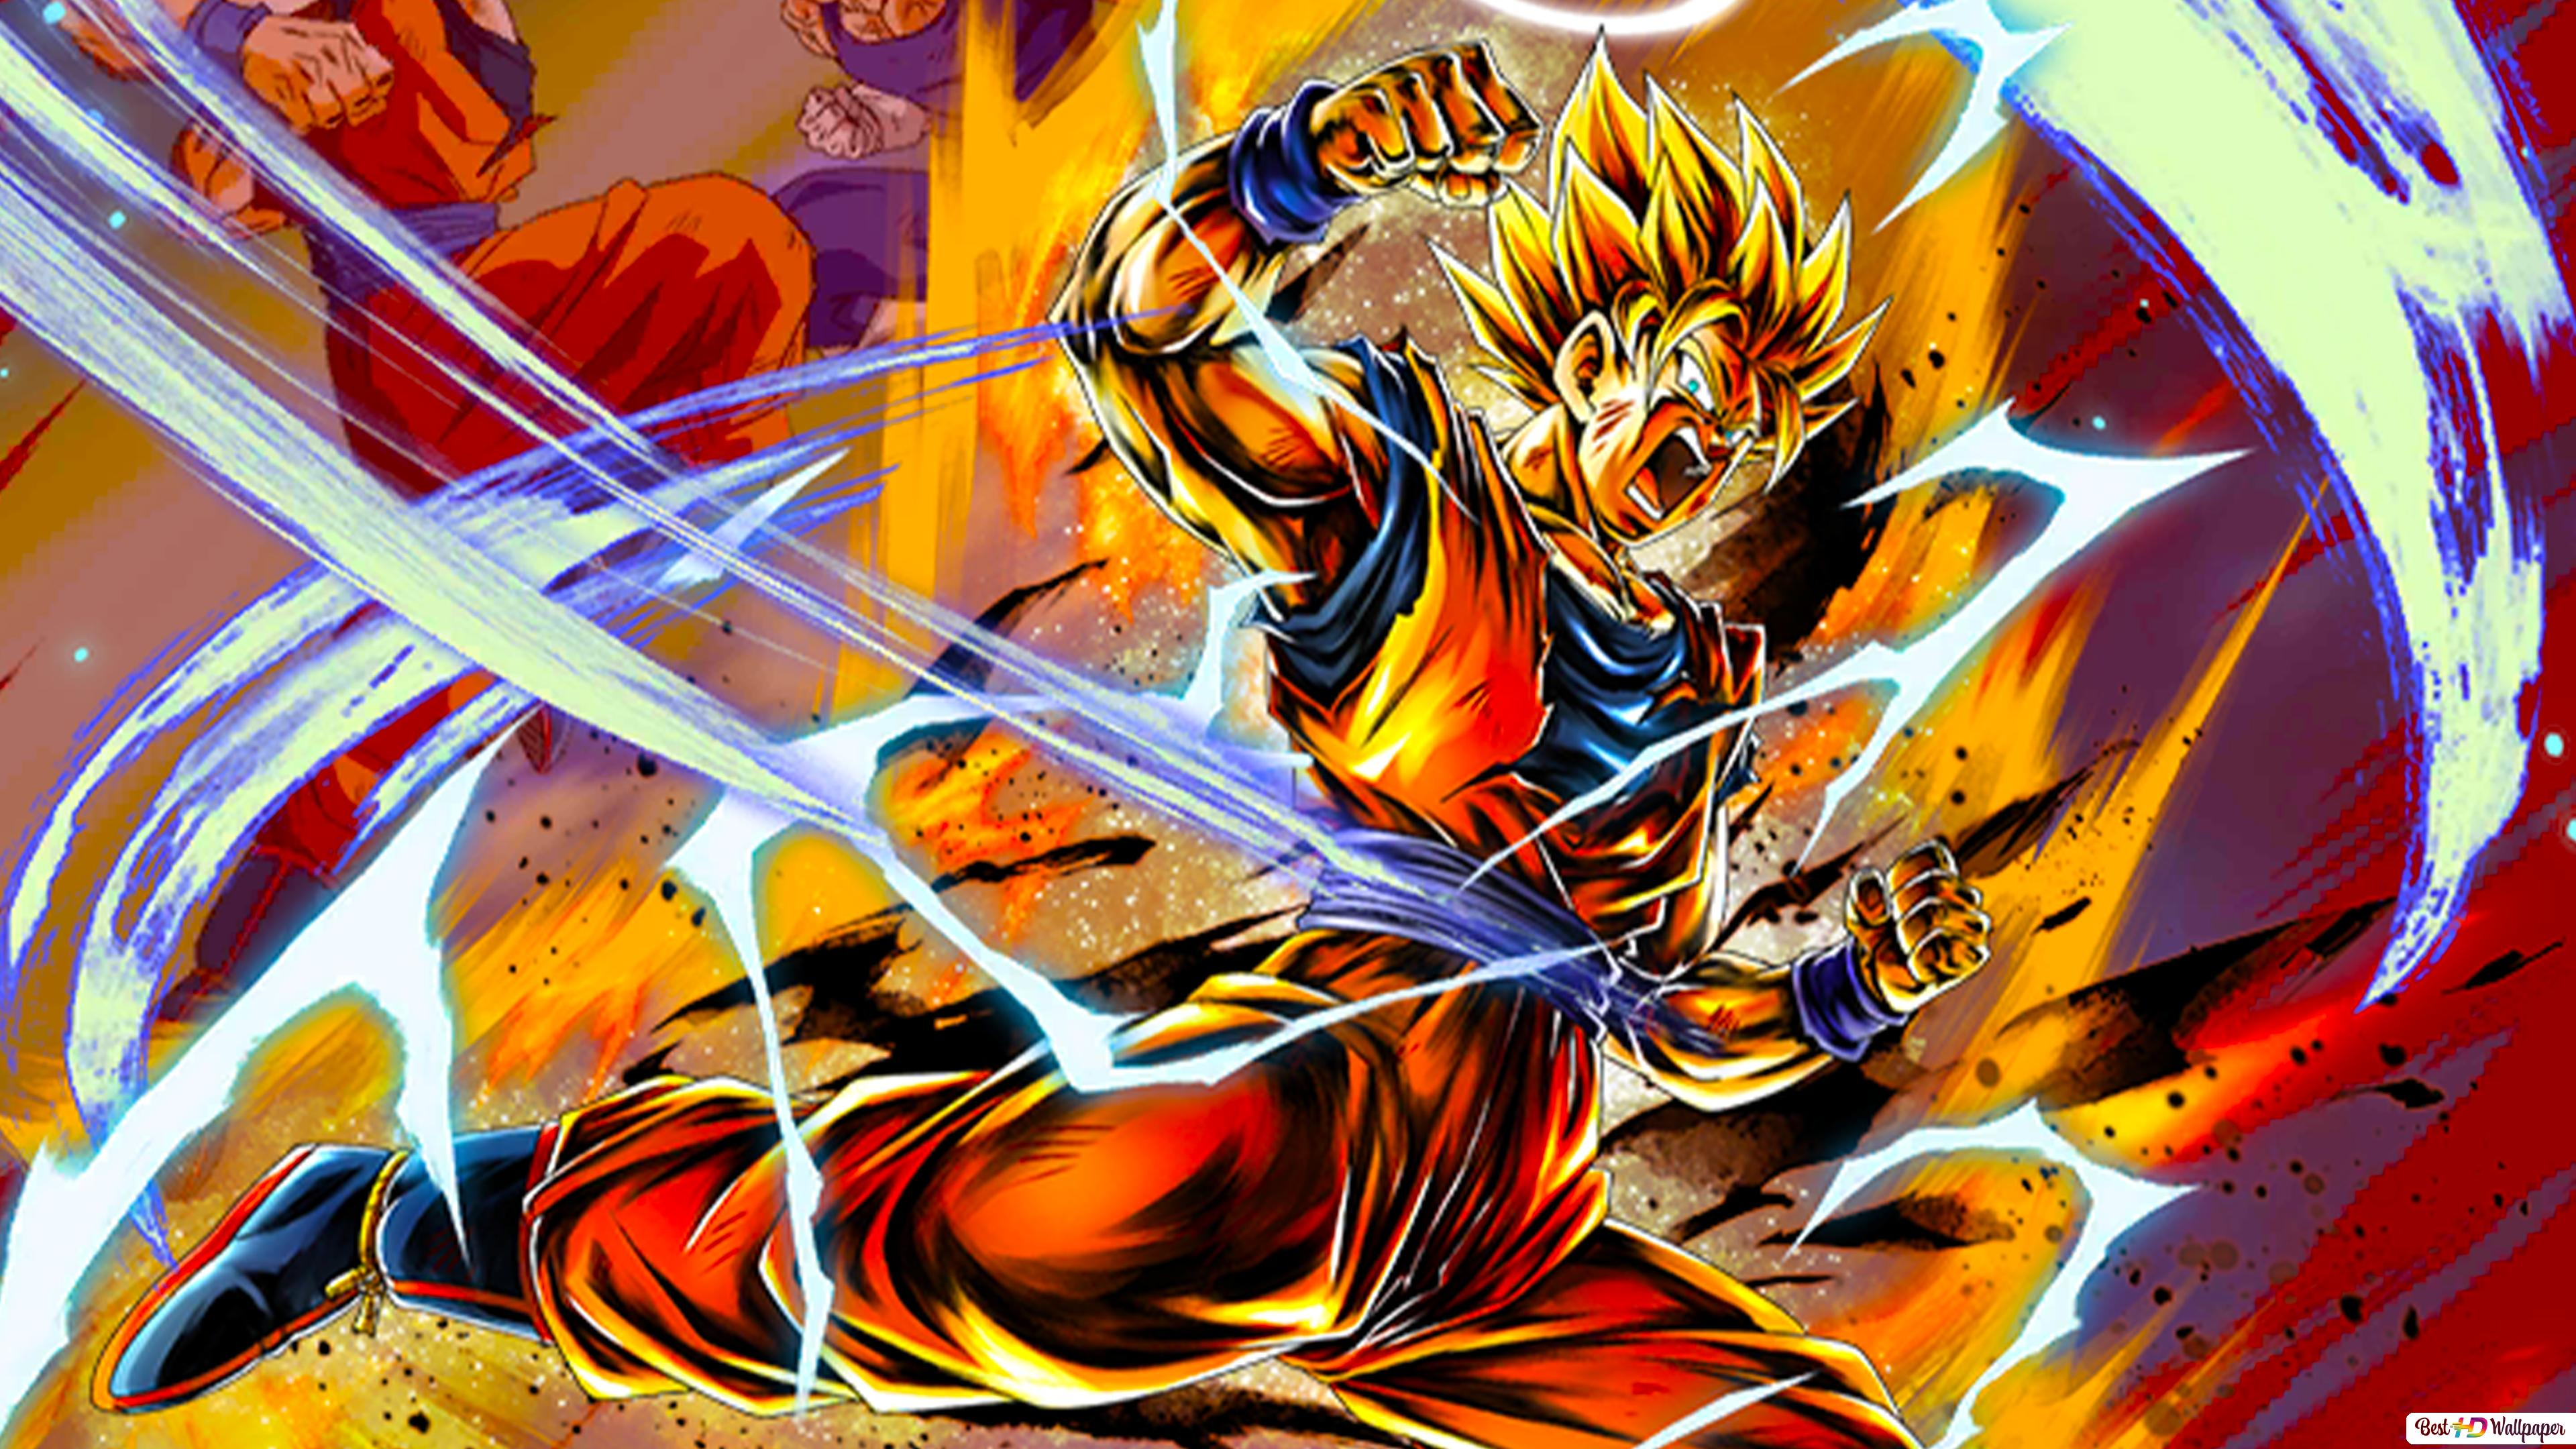 Super Saiyan 2 Goku Vs Majin Vegeta Dari Dragon Ball Z Dragon Ball Legends Arts Untuk Desktop Unduhan Wallpaper Hd